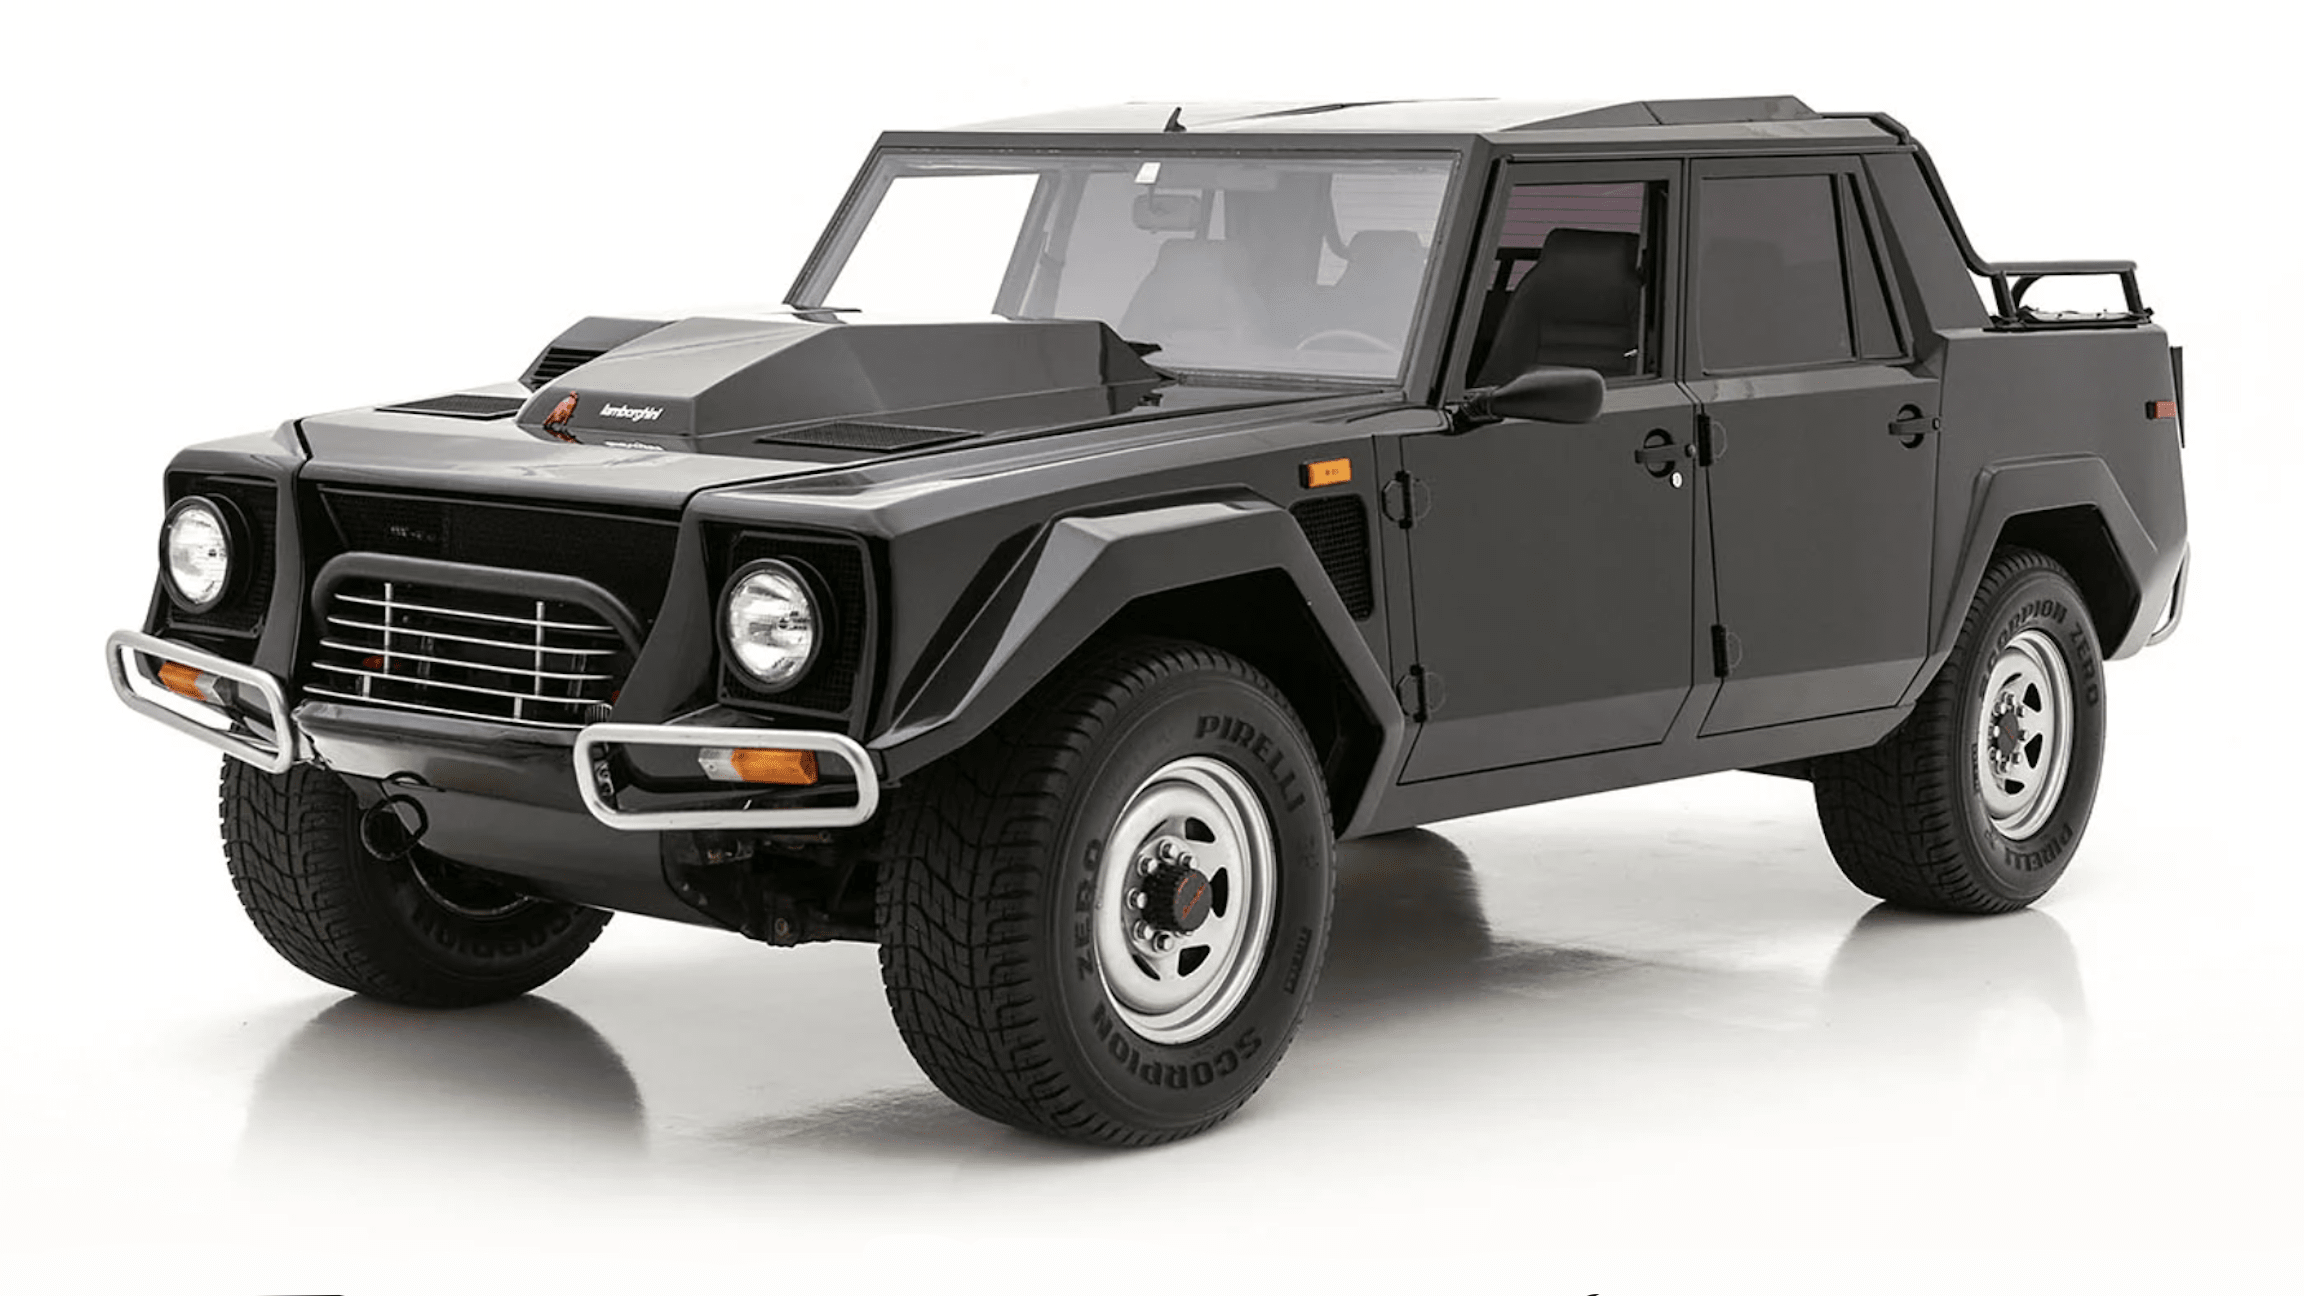 Lamborghini LM002 V12 off-roader listed for sale